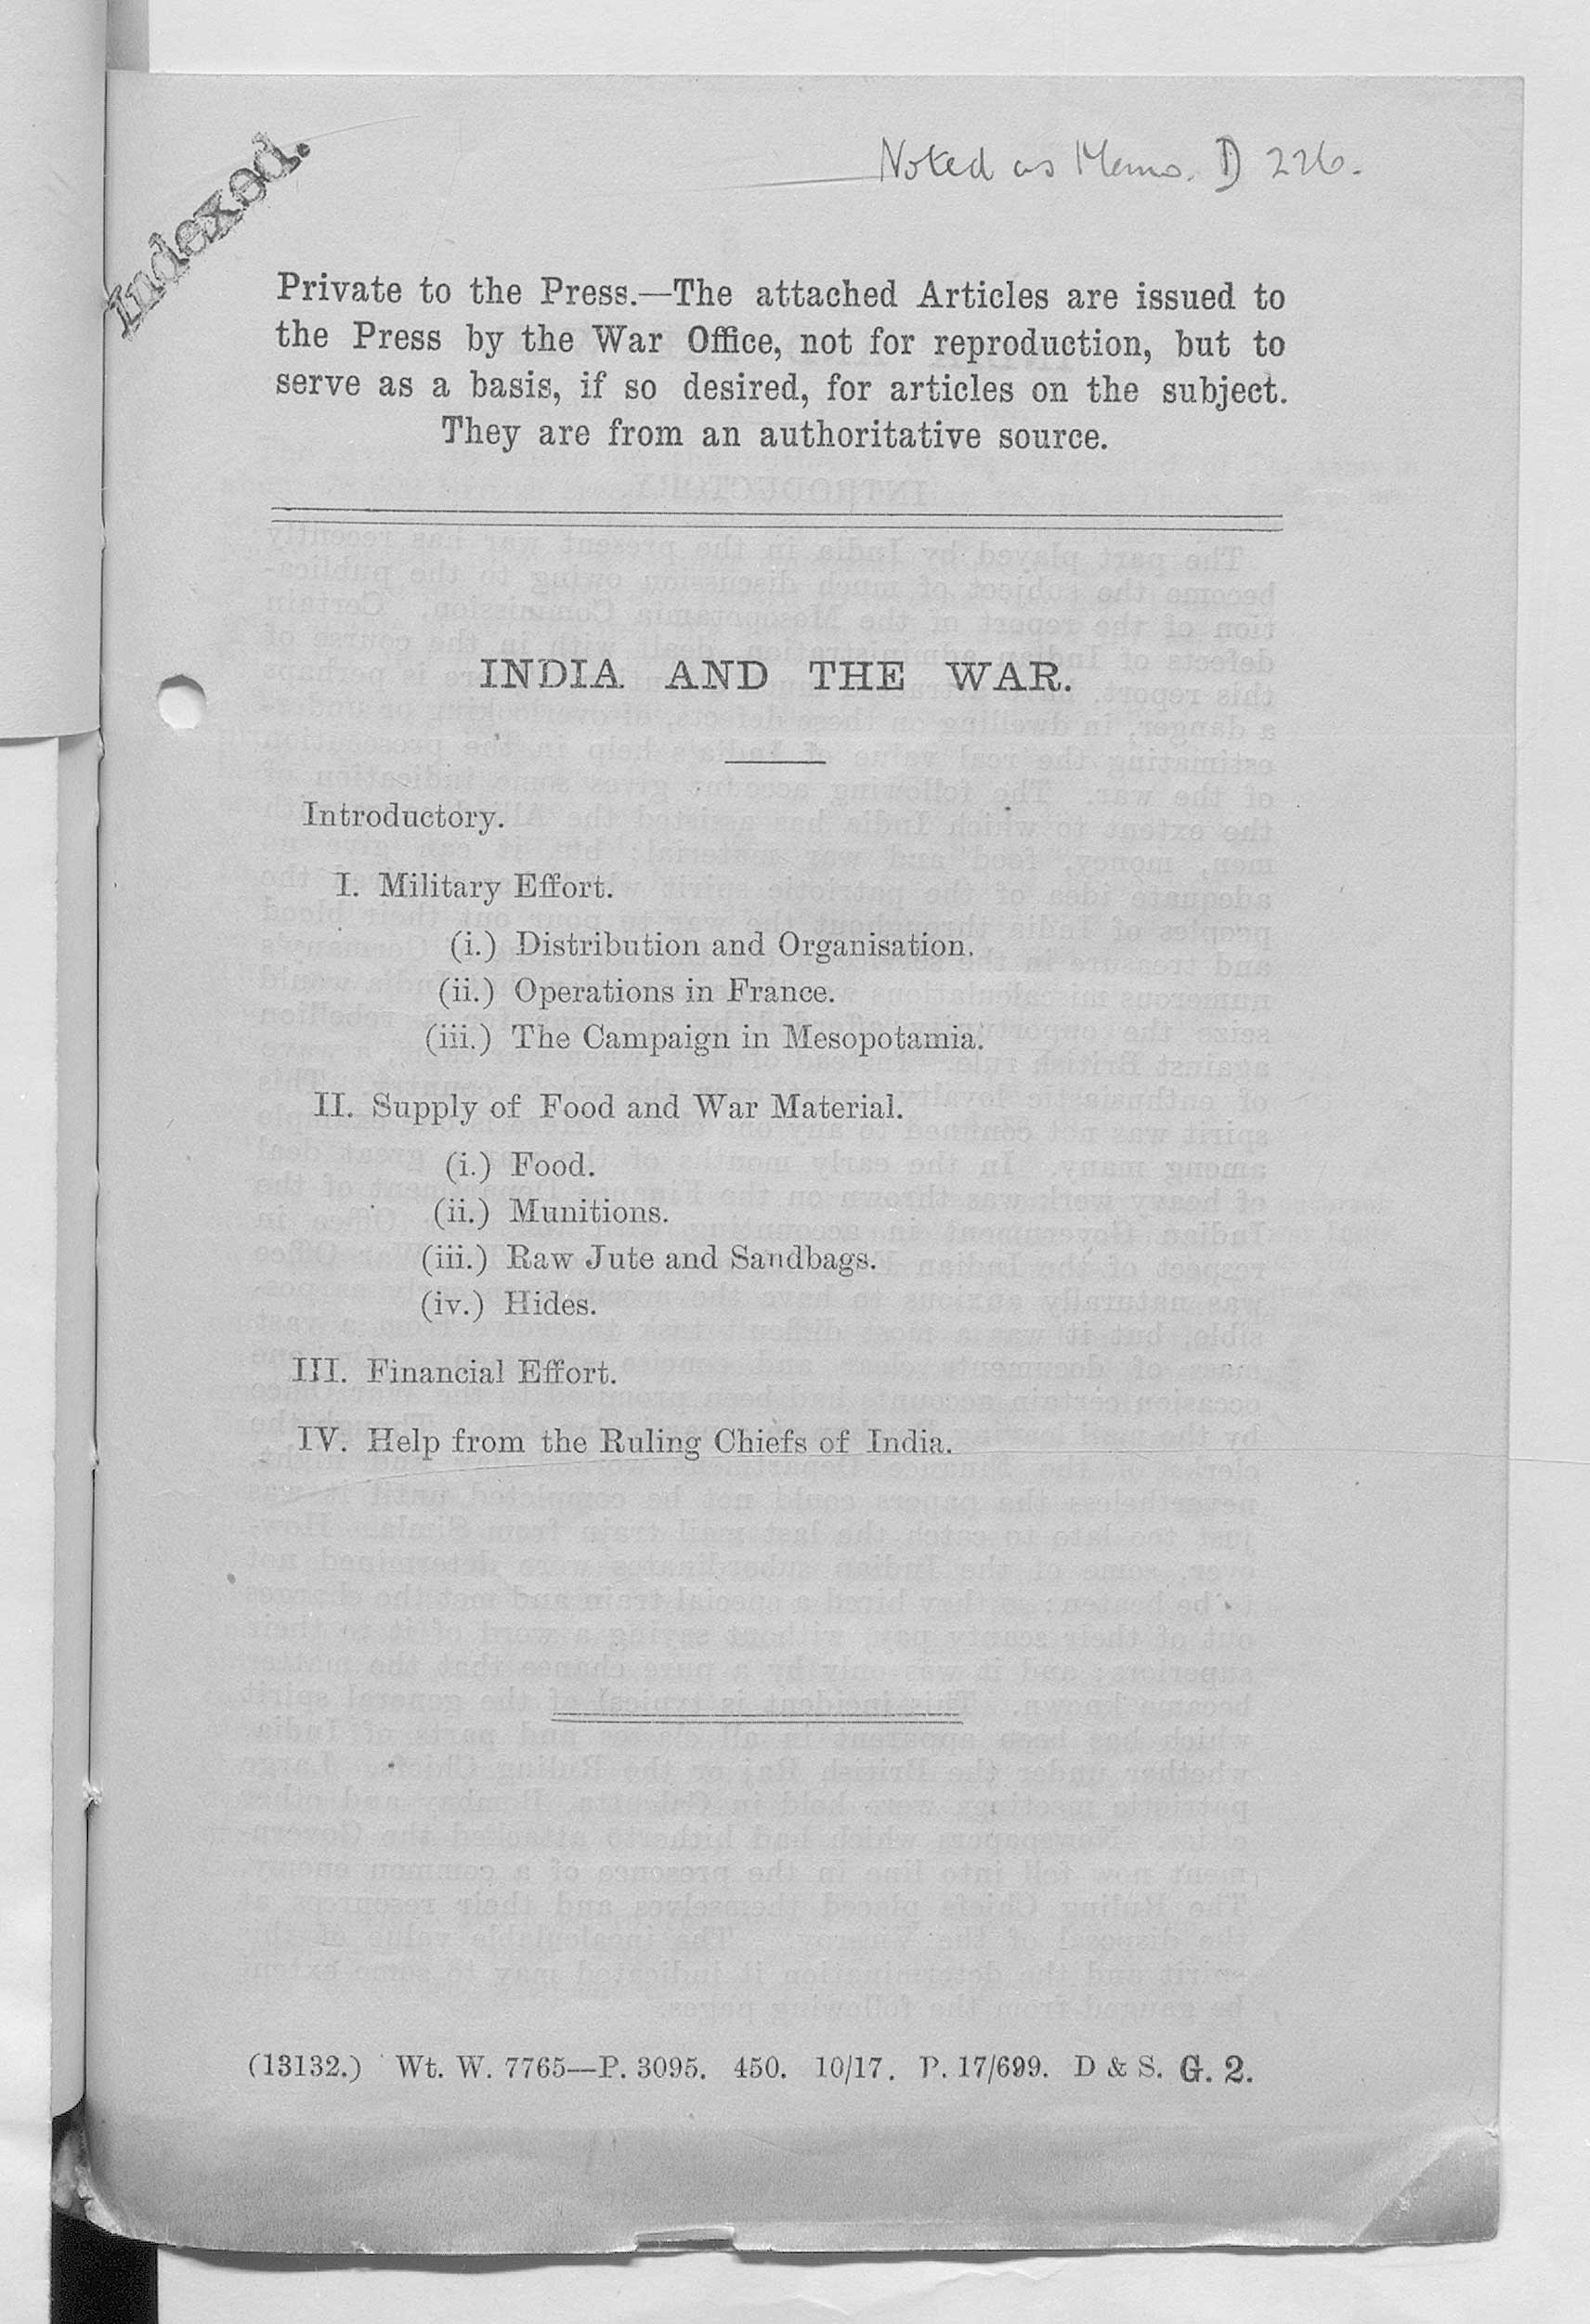 Press briefing from the War Office, 1917, designed not for reproduction but as a basis for articles.